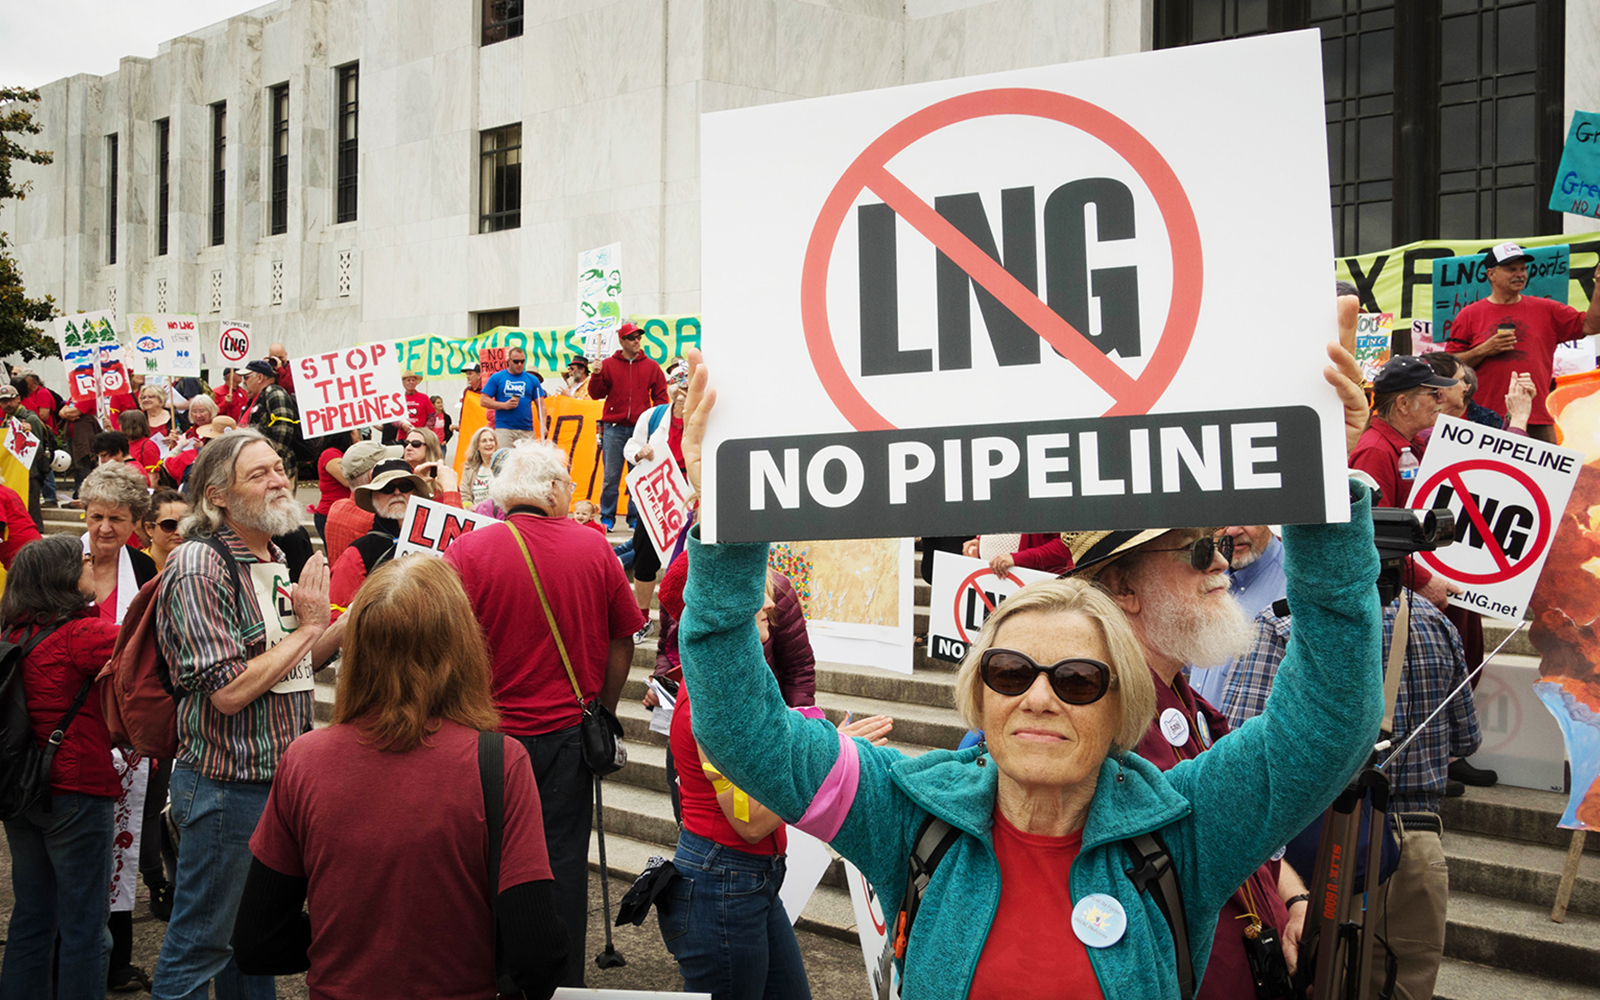 Federal Government Rejects Request to Overturn Oregon's Denial of LNG Project